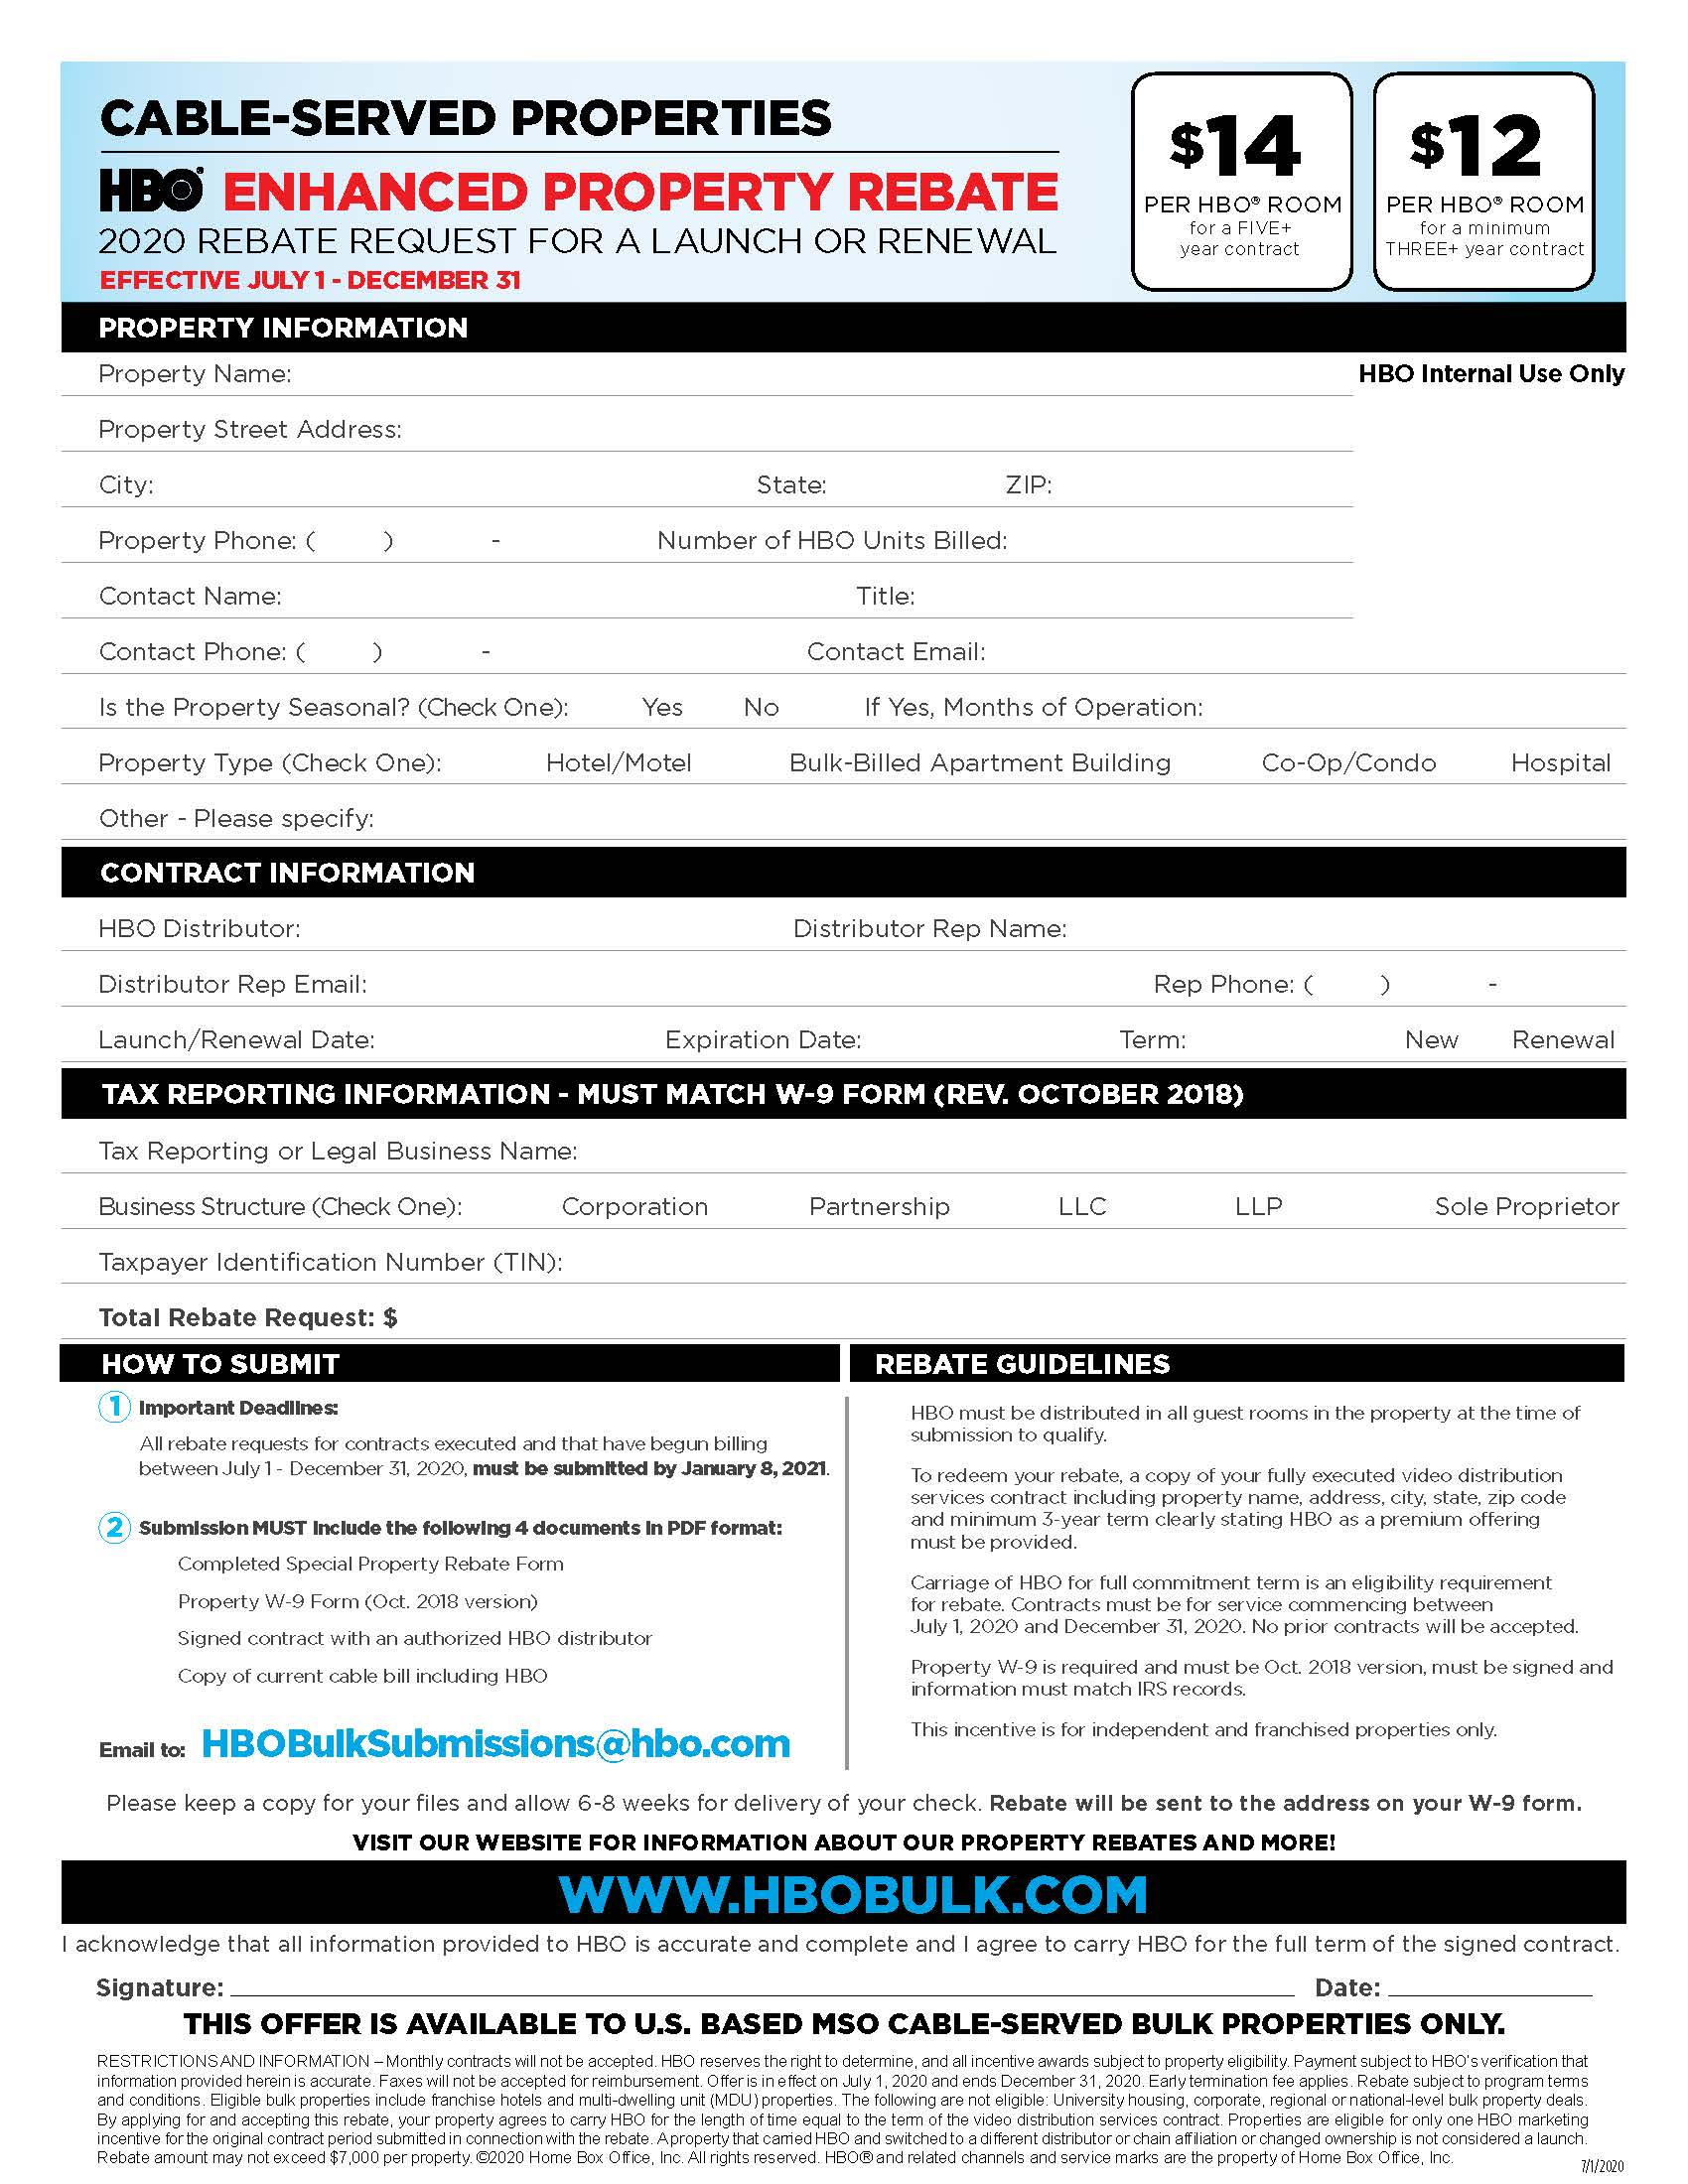 2020-hbo-enhanced-property-rebate-form-cable-(2h20)_Page_1